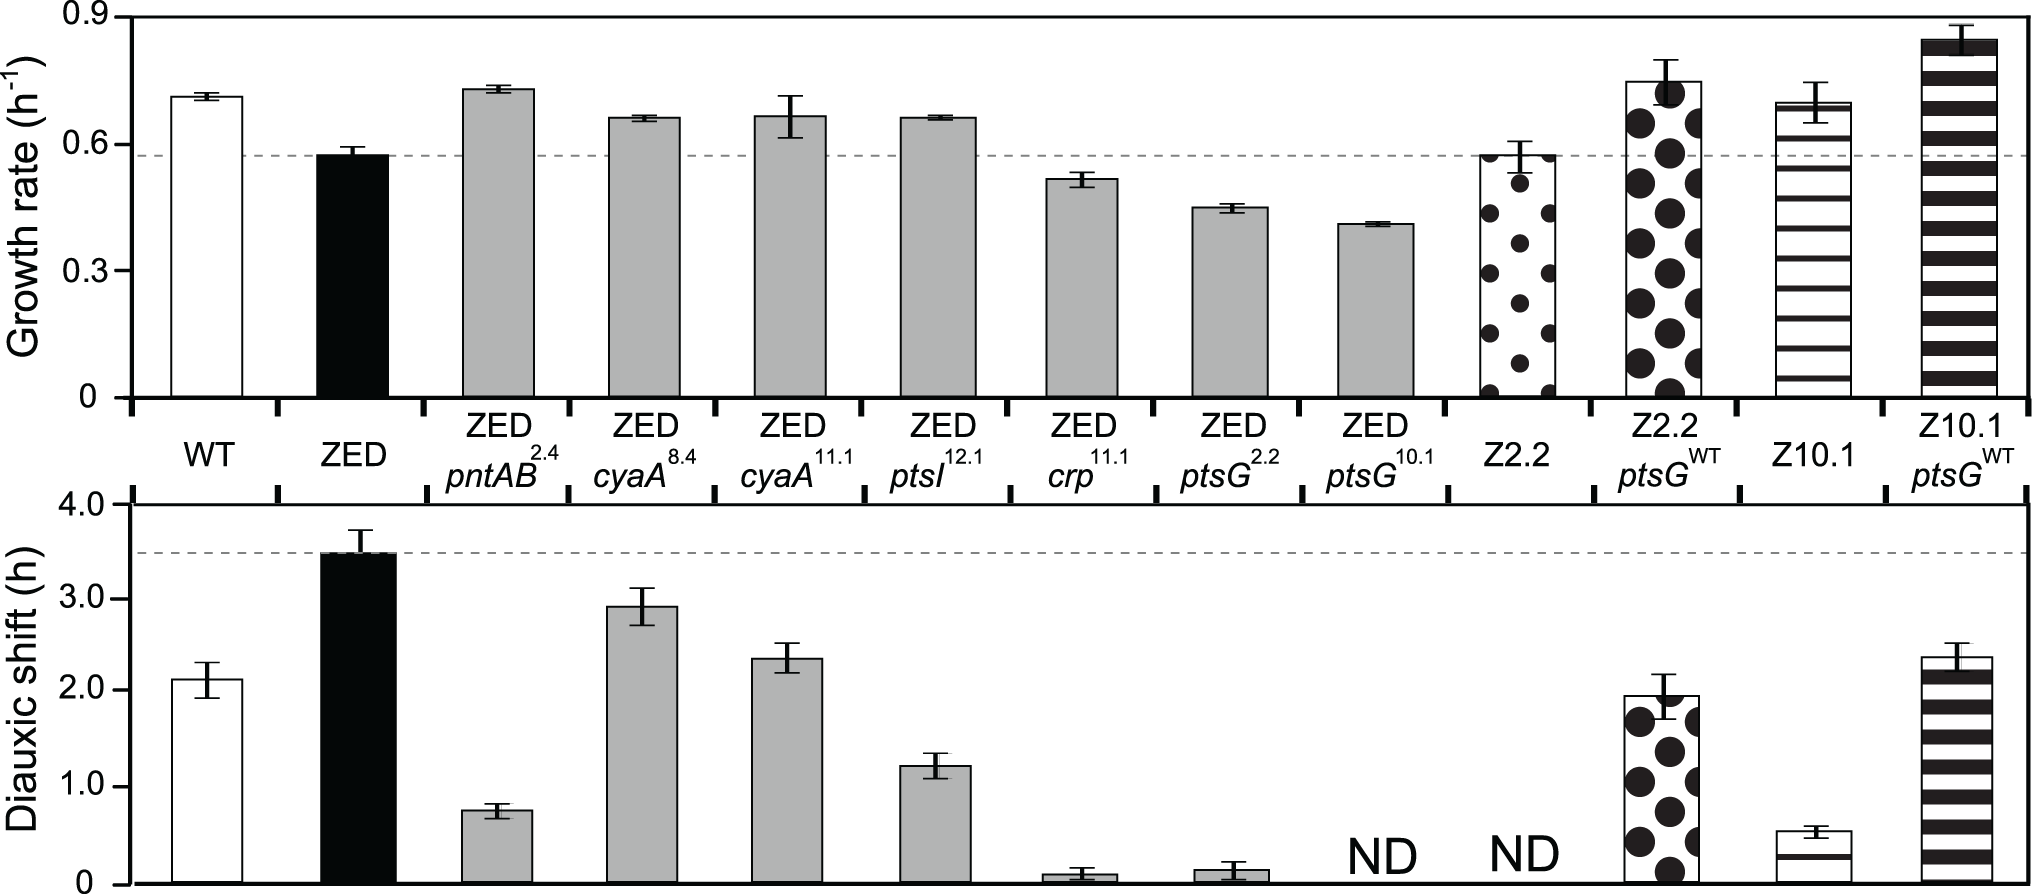 Effects of adaptive mutations on growth rates and diauxic shifts.